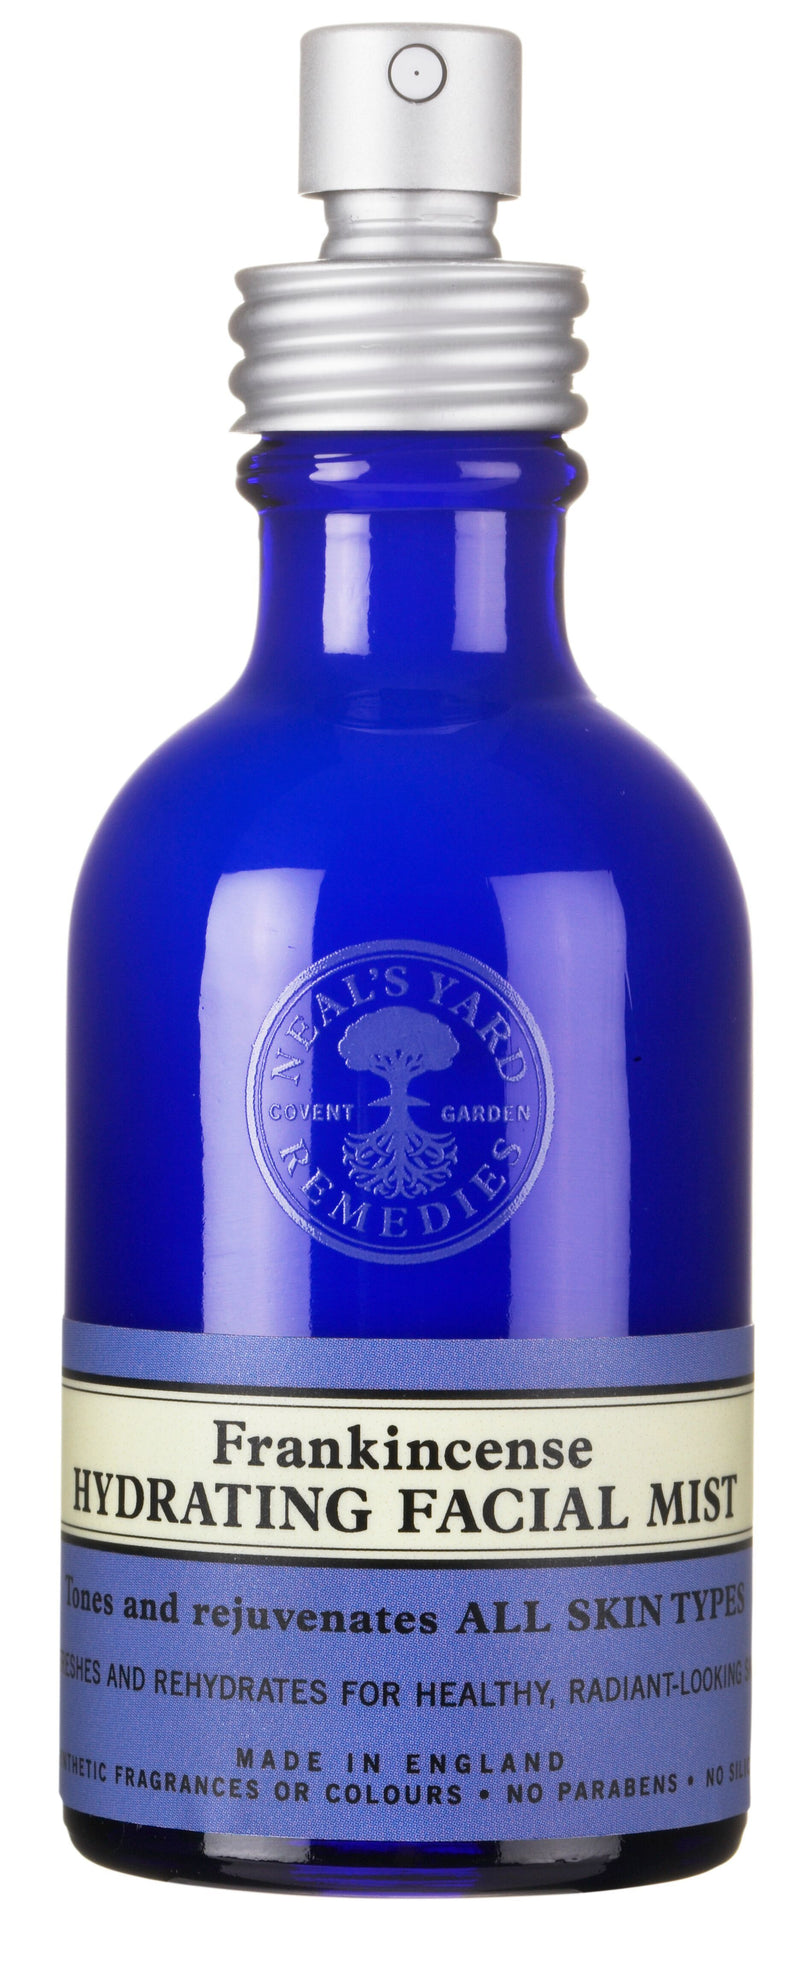 Neal´s Yard Remedies Frankincense Hydrating Facial Mist